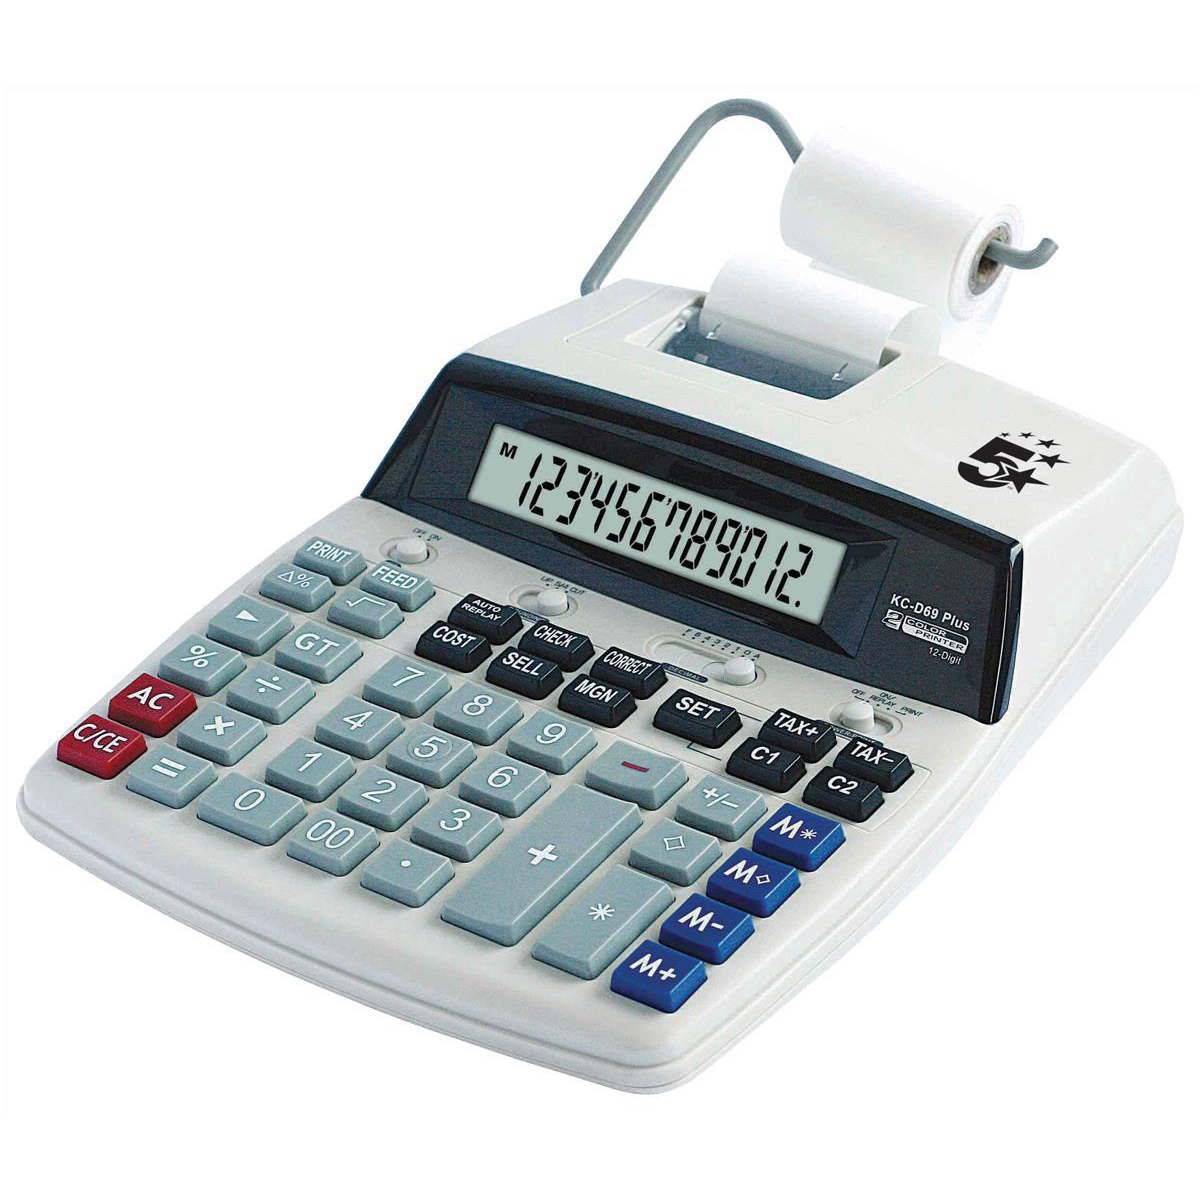 5 Star Office Desktop Printing Calculator 12 Digit Display 2 Colour Print 2.7 Lines/Sec 198x65x260mm Grey